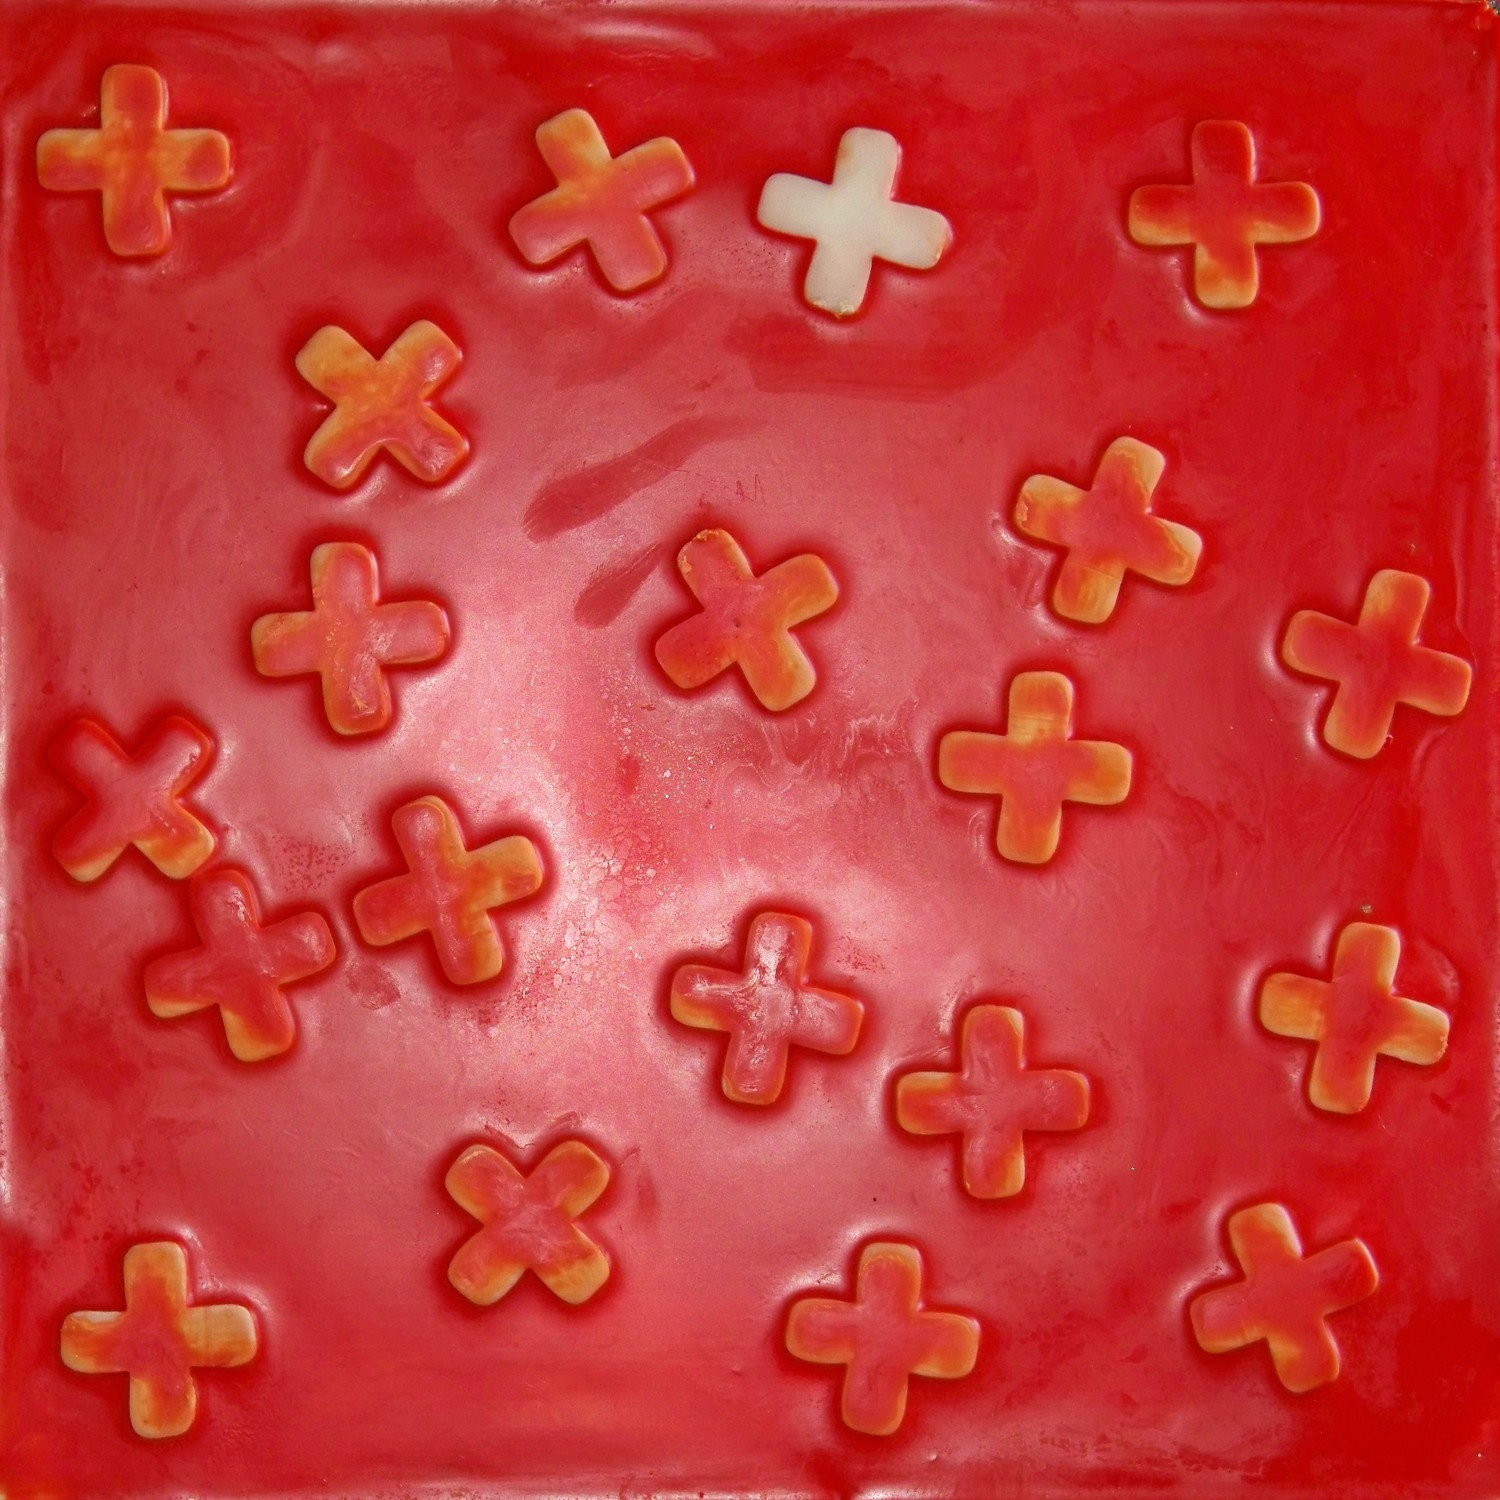 X Marks the Spot - Encaustic Art by Robin Tripaldi